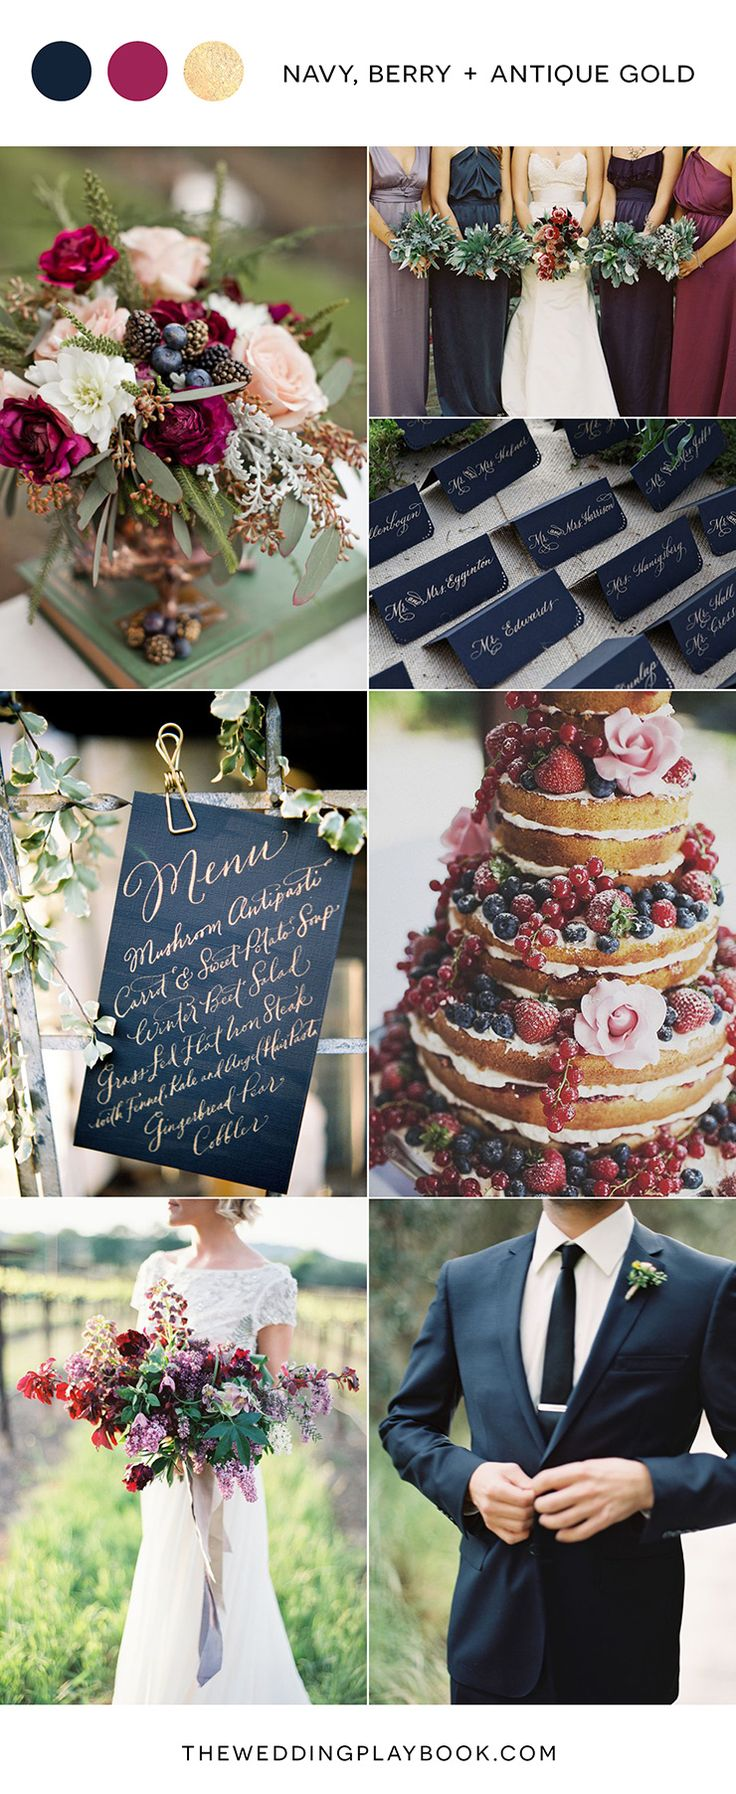 Navy, Berry & Antique Gold Wedding Mood Board